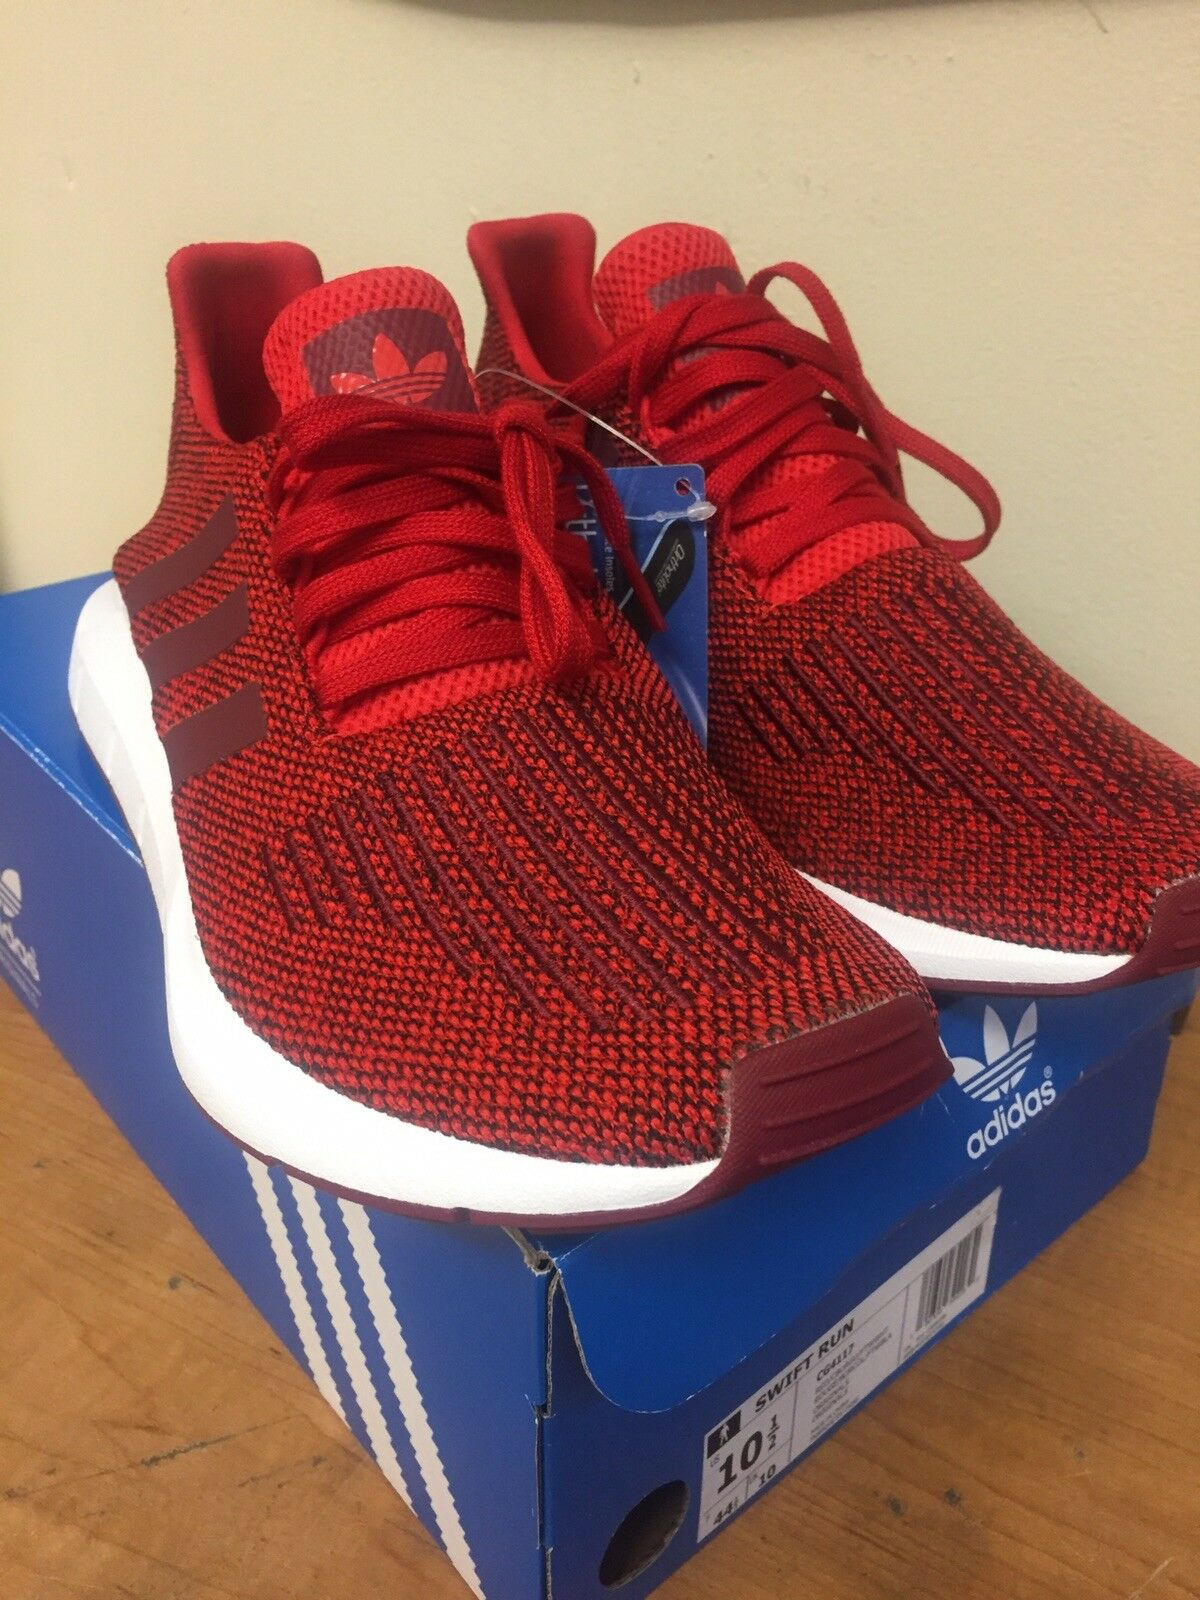 adidas swift terme   terme  chaussures Rouge  / collegiate burgundy / nuage blanc sz 10,5 cg4117 906807